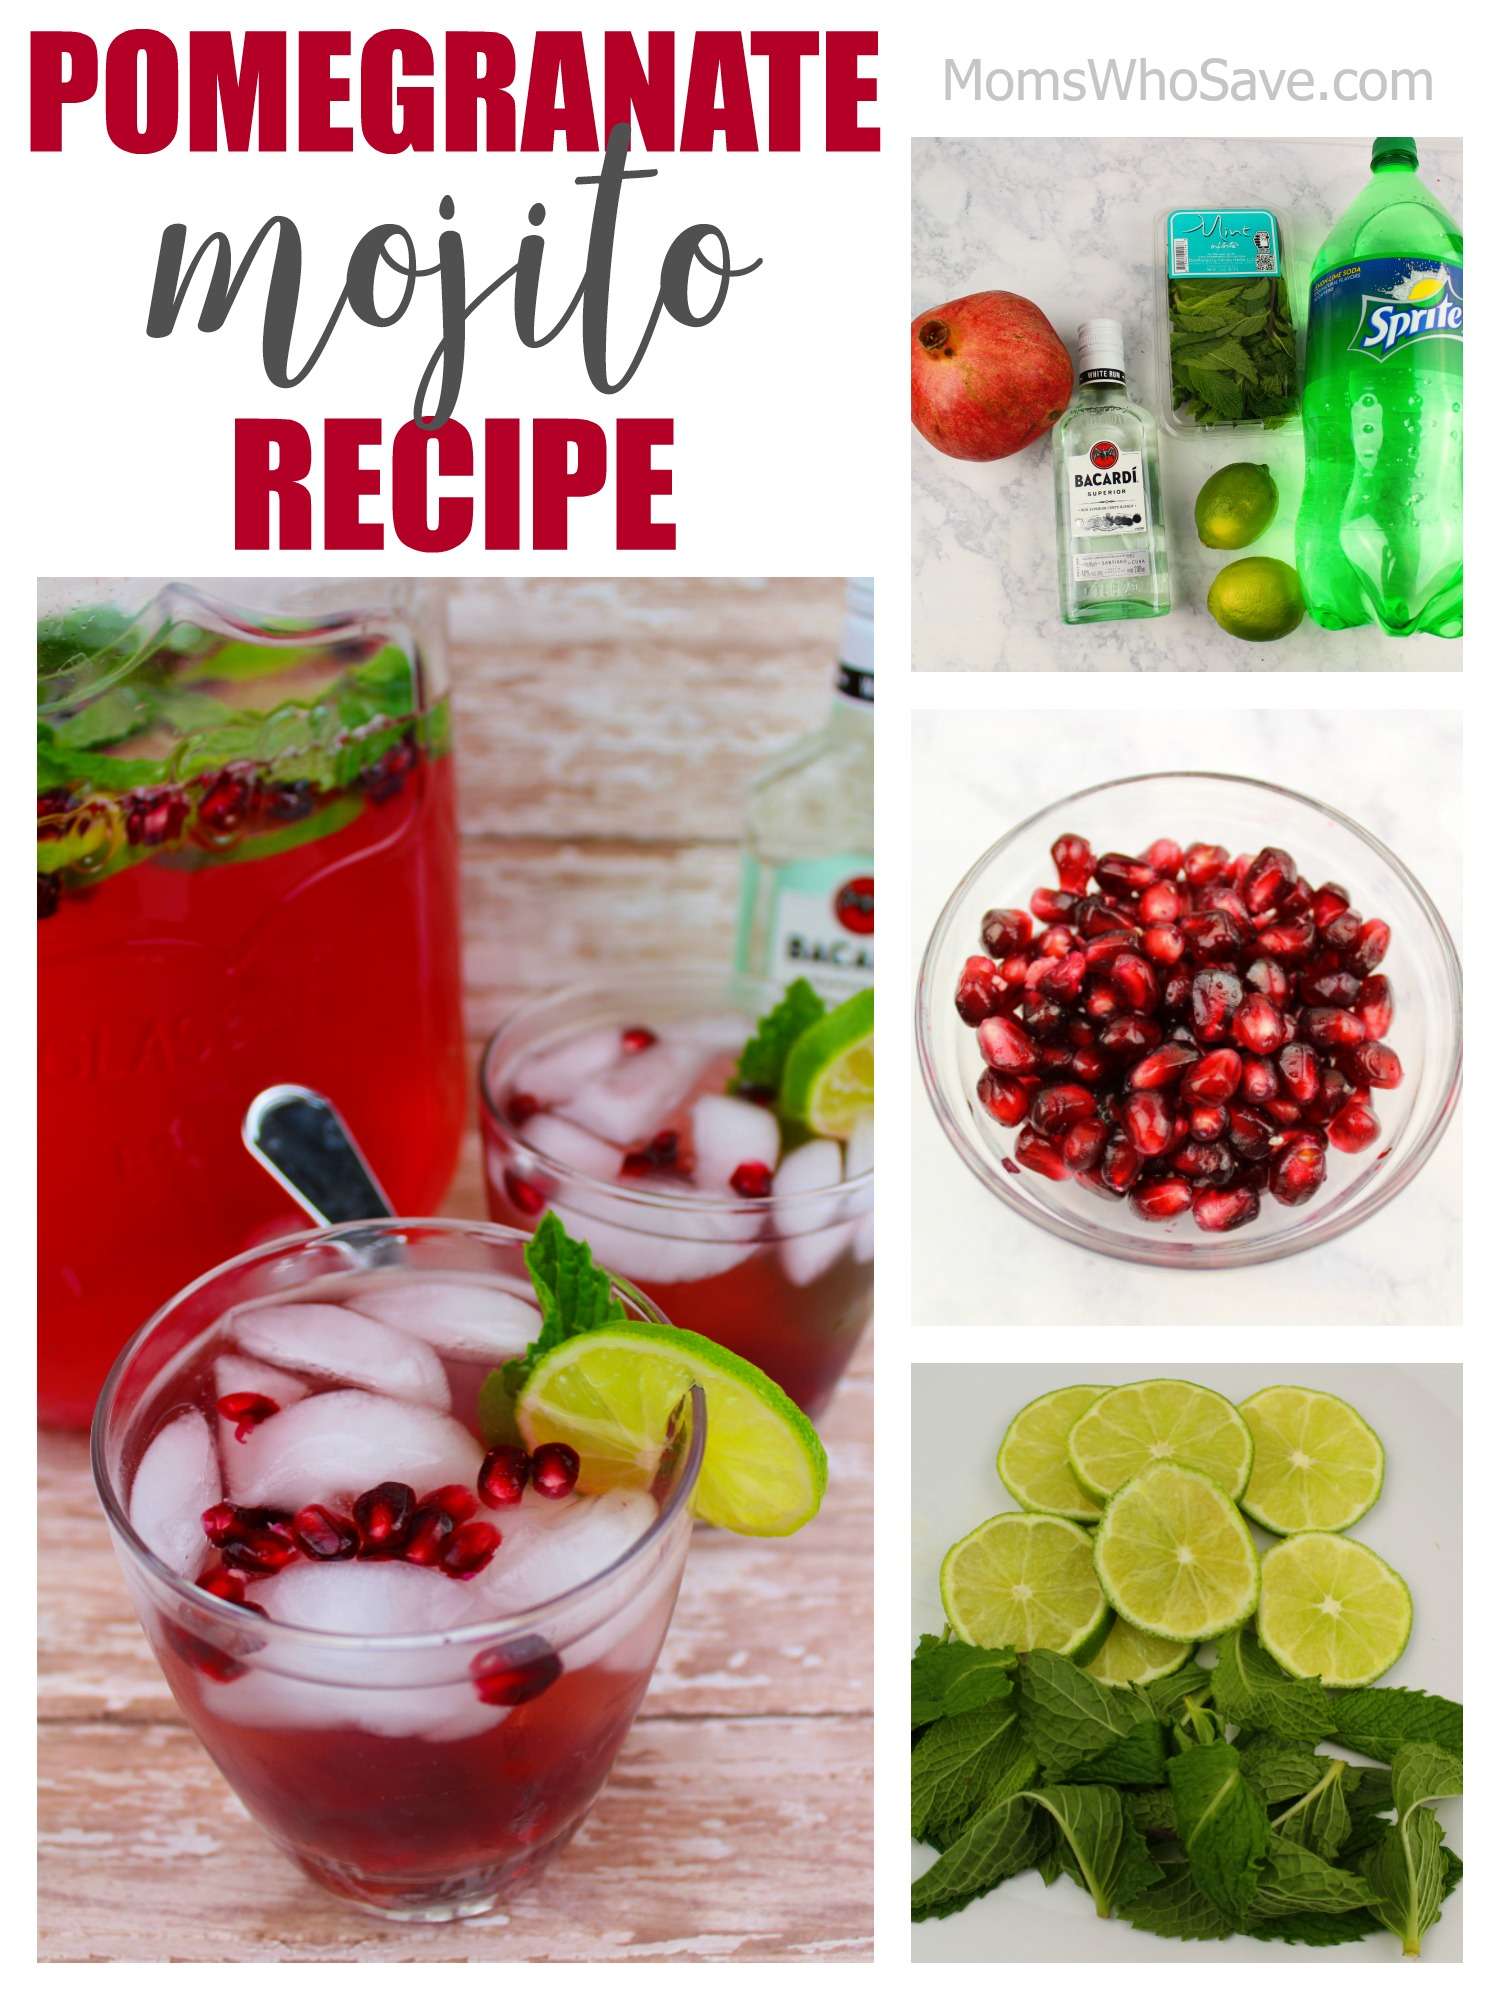 recipe for pomegranate mojitos